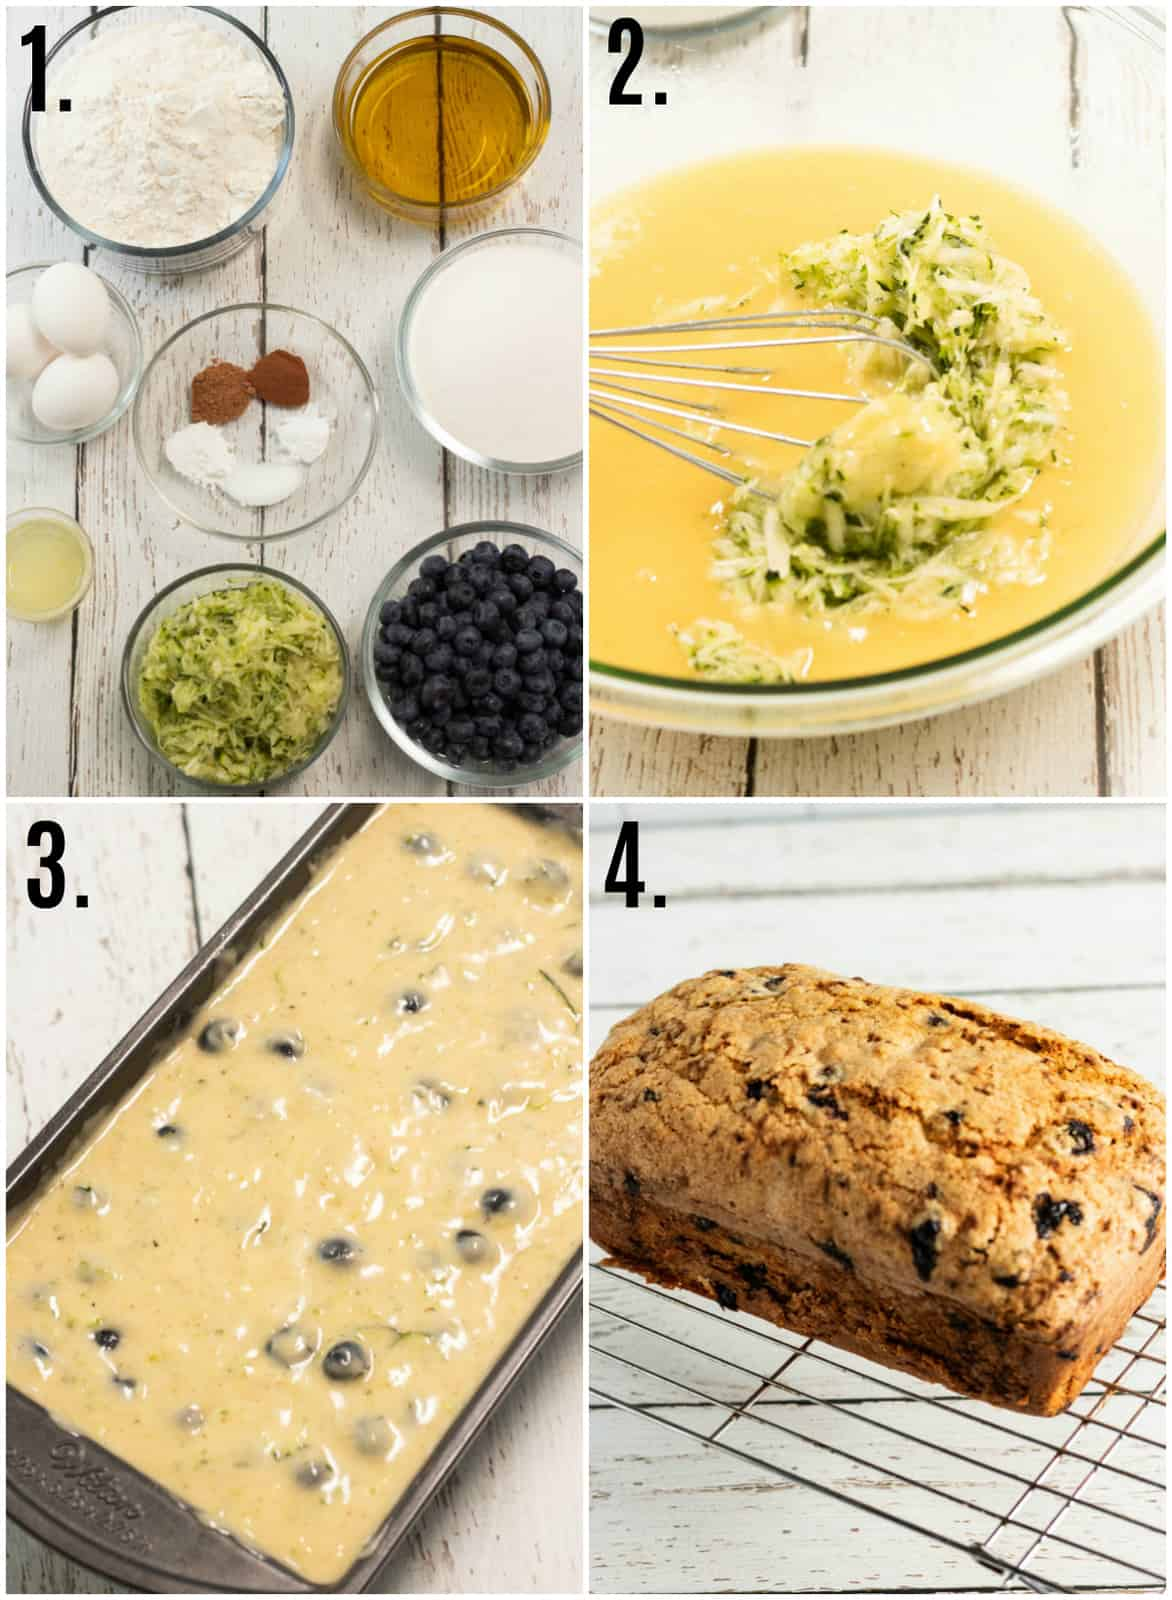 Step by step photos on how to make Lemon Blueberry Zucchini Bread